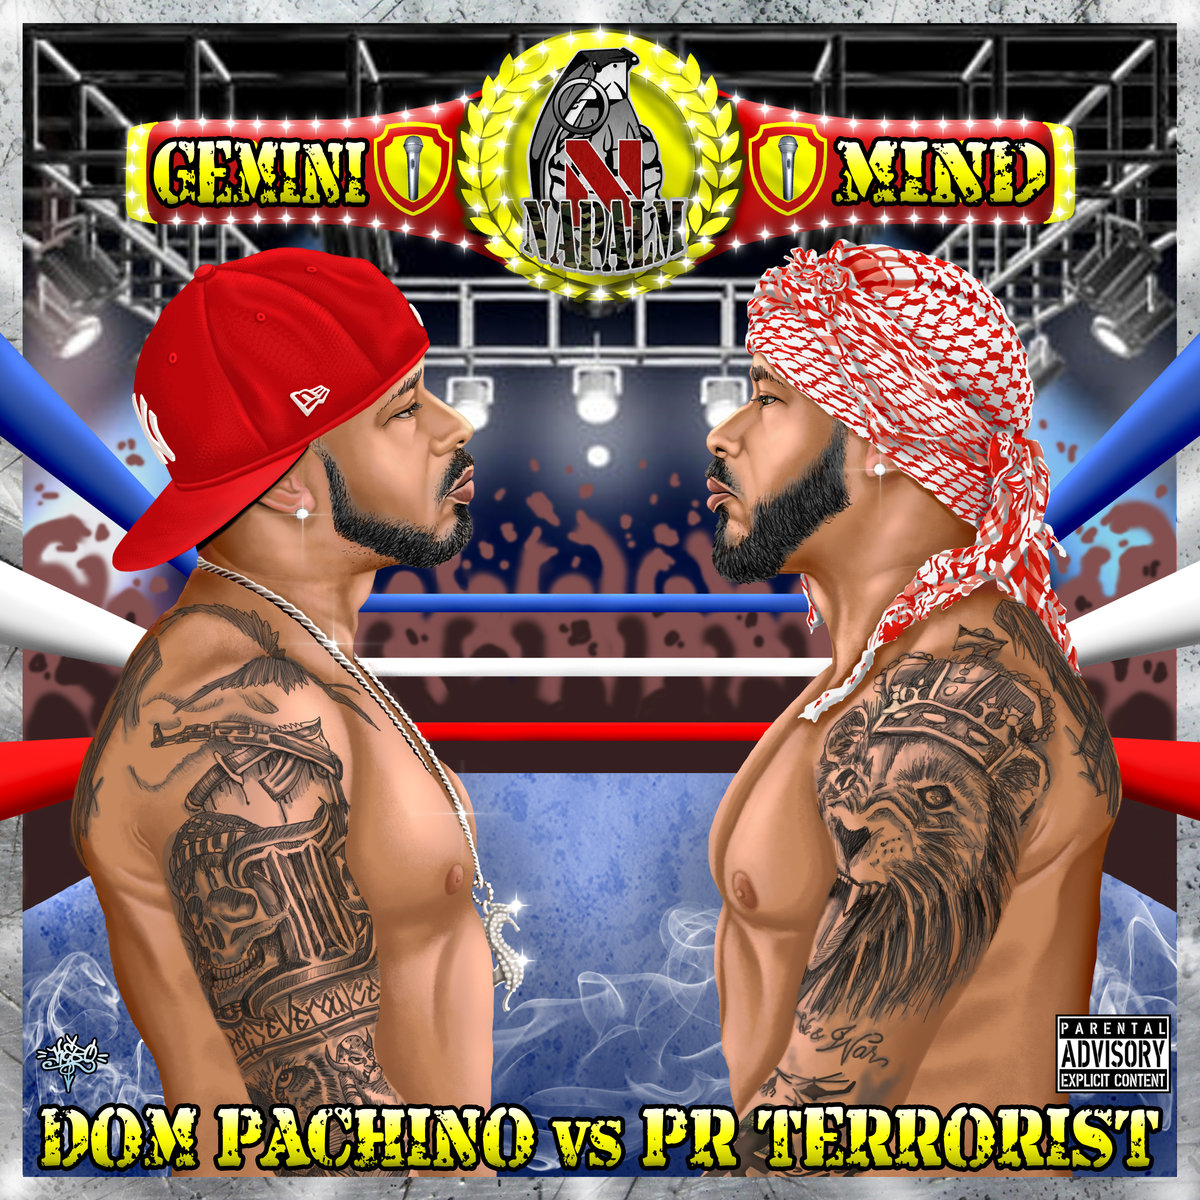 DOM PACHINO –  GEMINI MIND (DOM PACHINO vs P.R. TERRORIST) LP Review